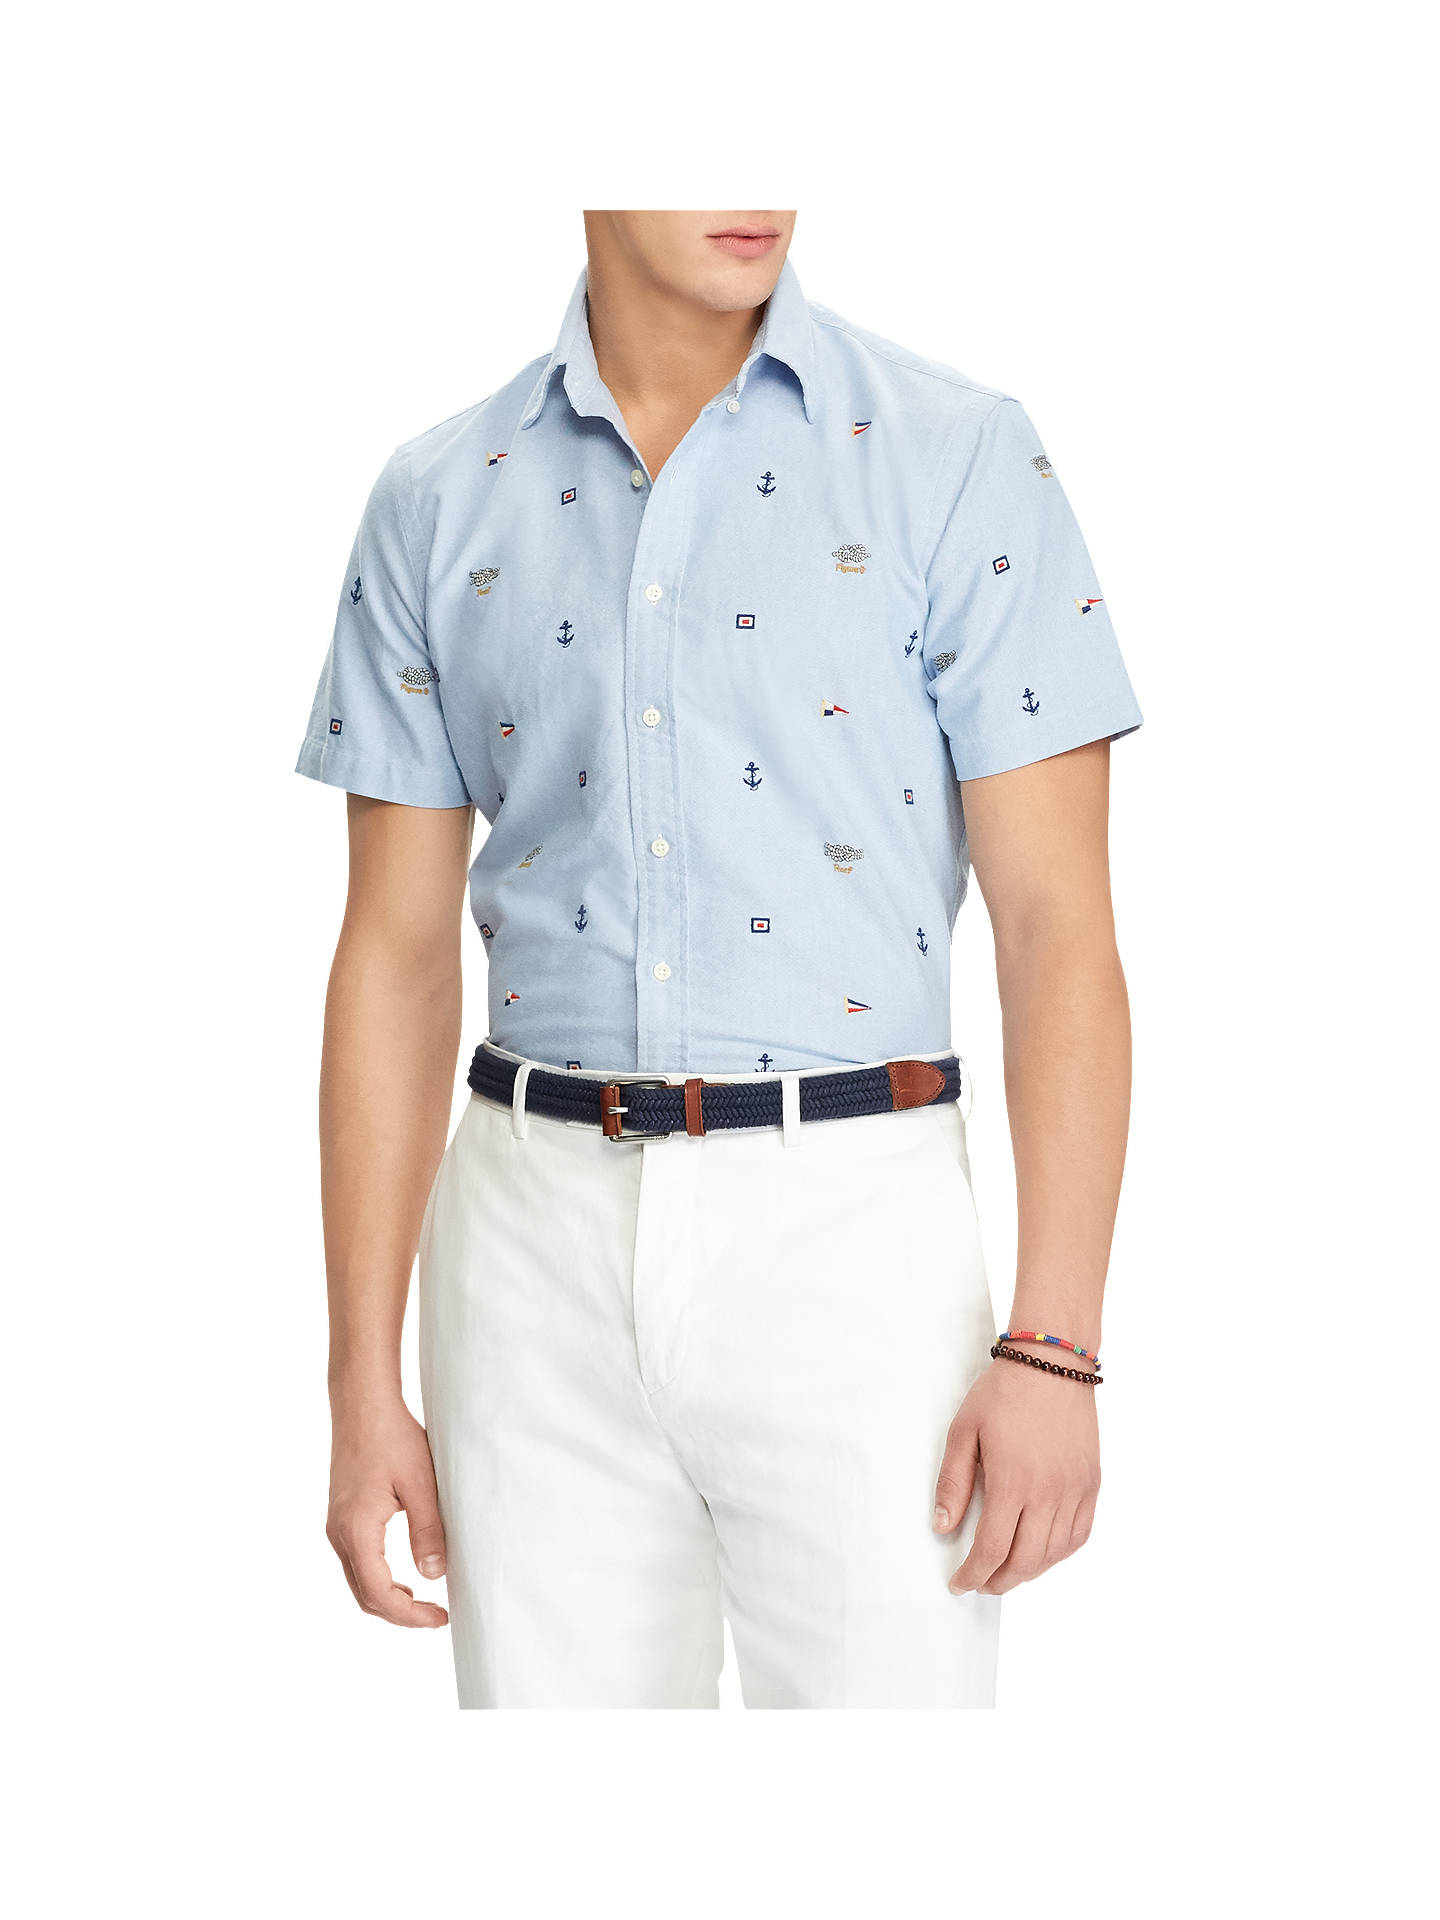 d3c5e358c060 Buy Polo Ralph Lauren Short Sleeve Slim Fit Printed Oxford Shirt